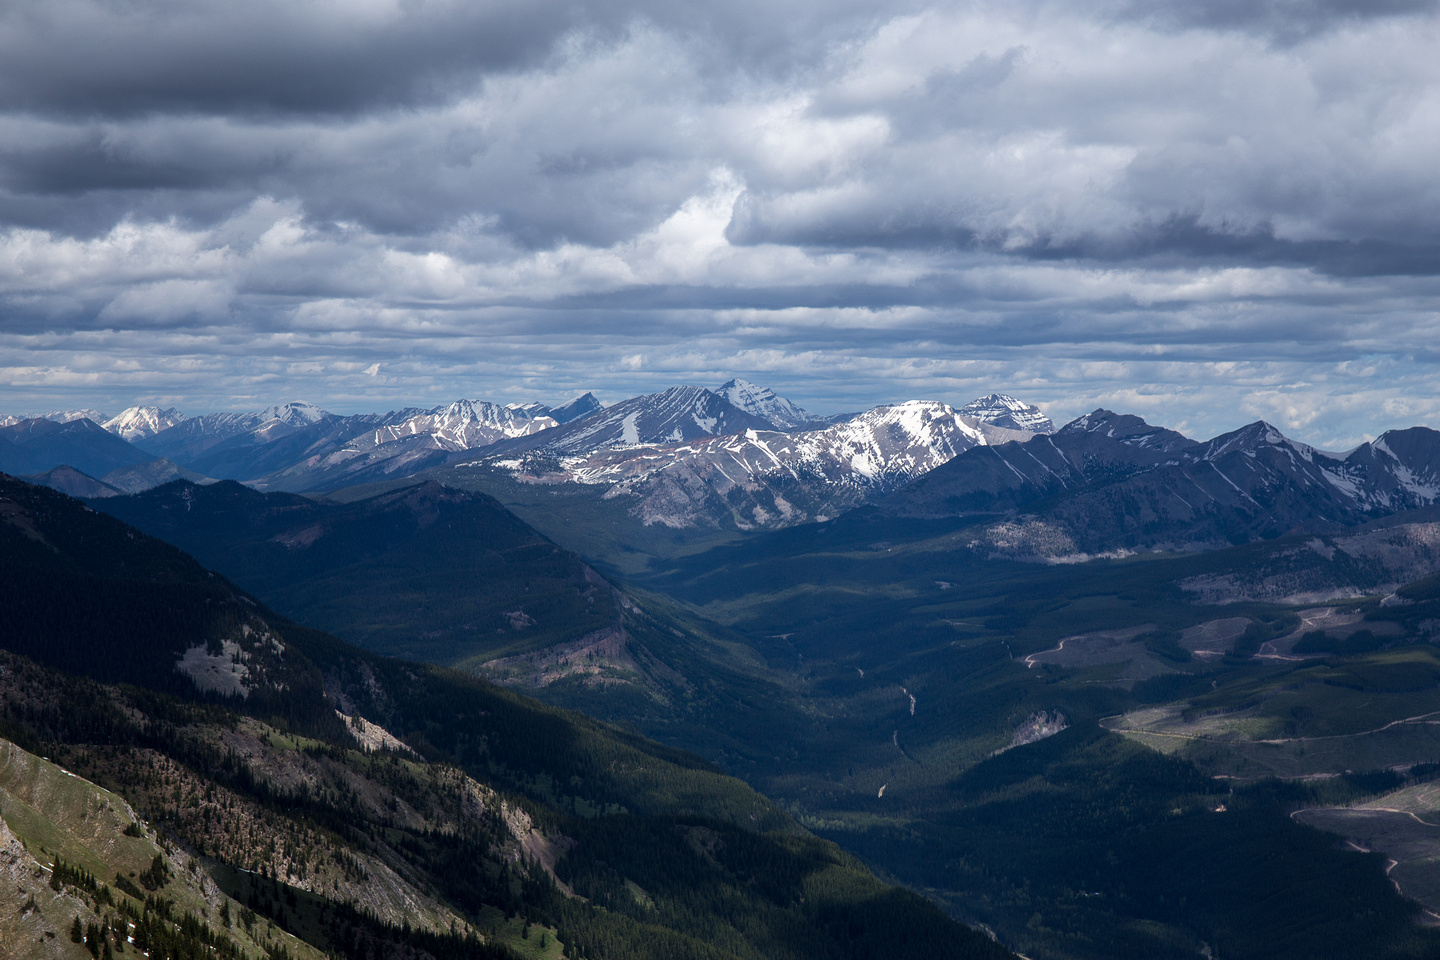 Looking southwest towards the Three Sisters near the town of Fernie.